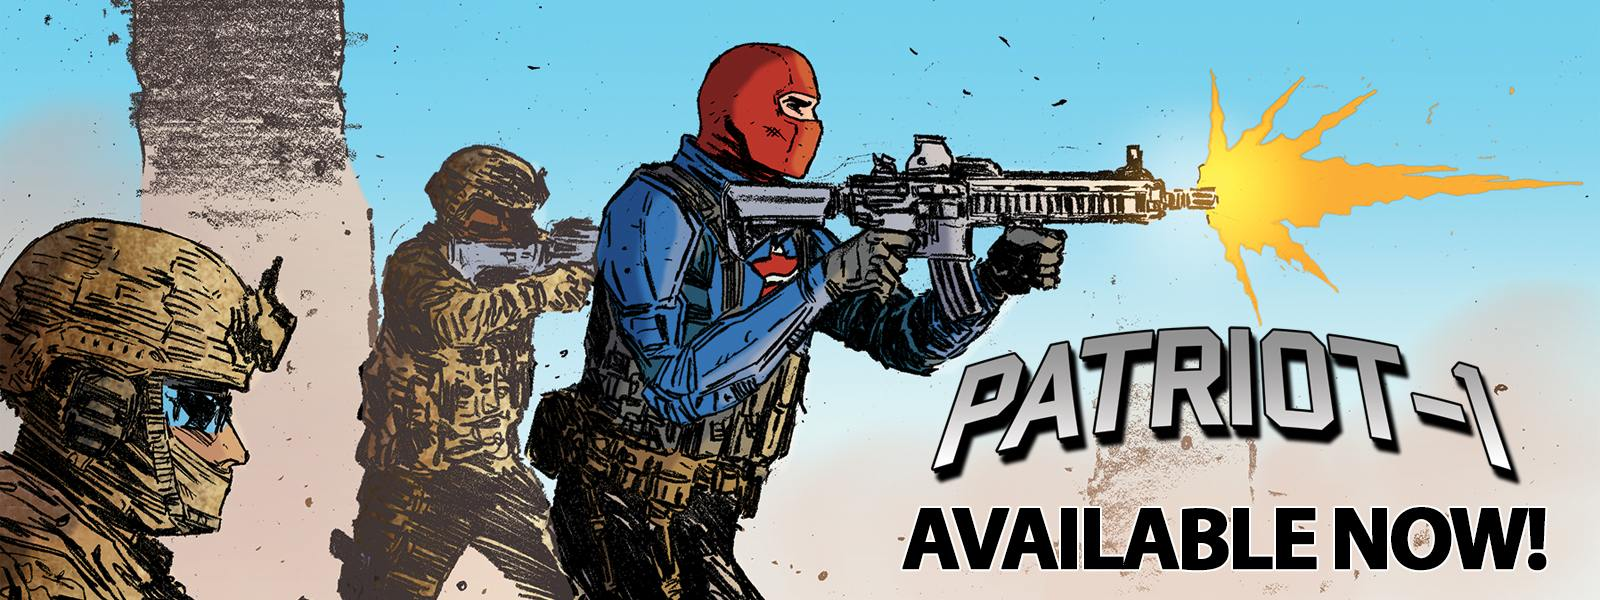 Patriot-1 Available now!